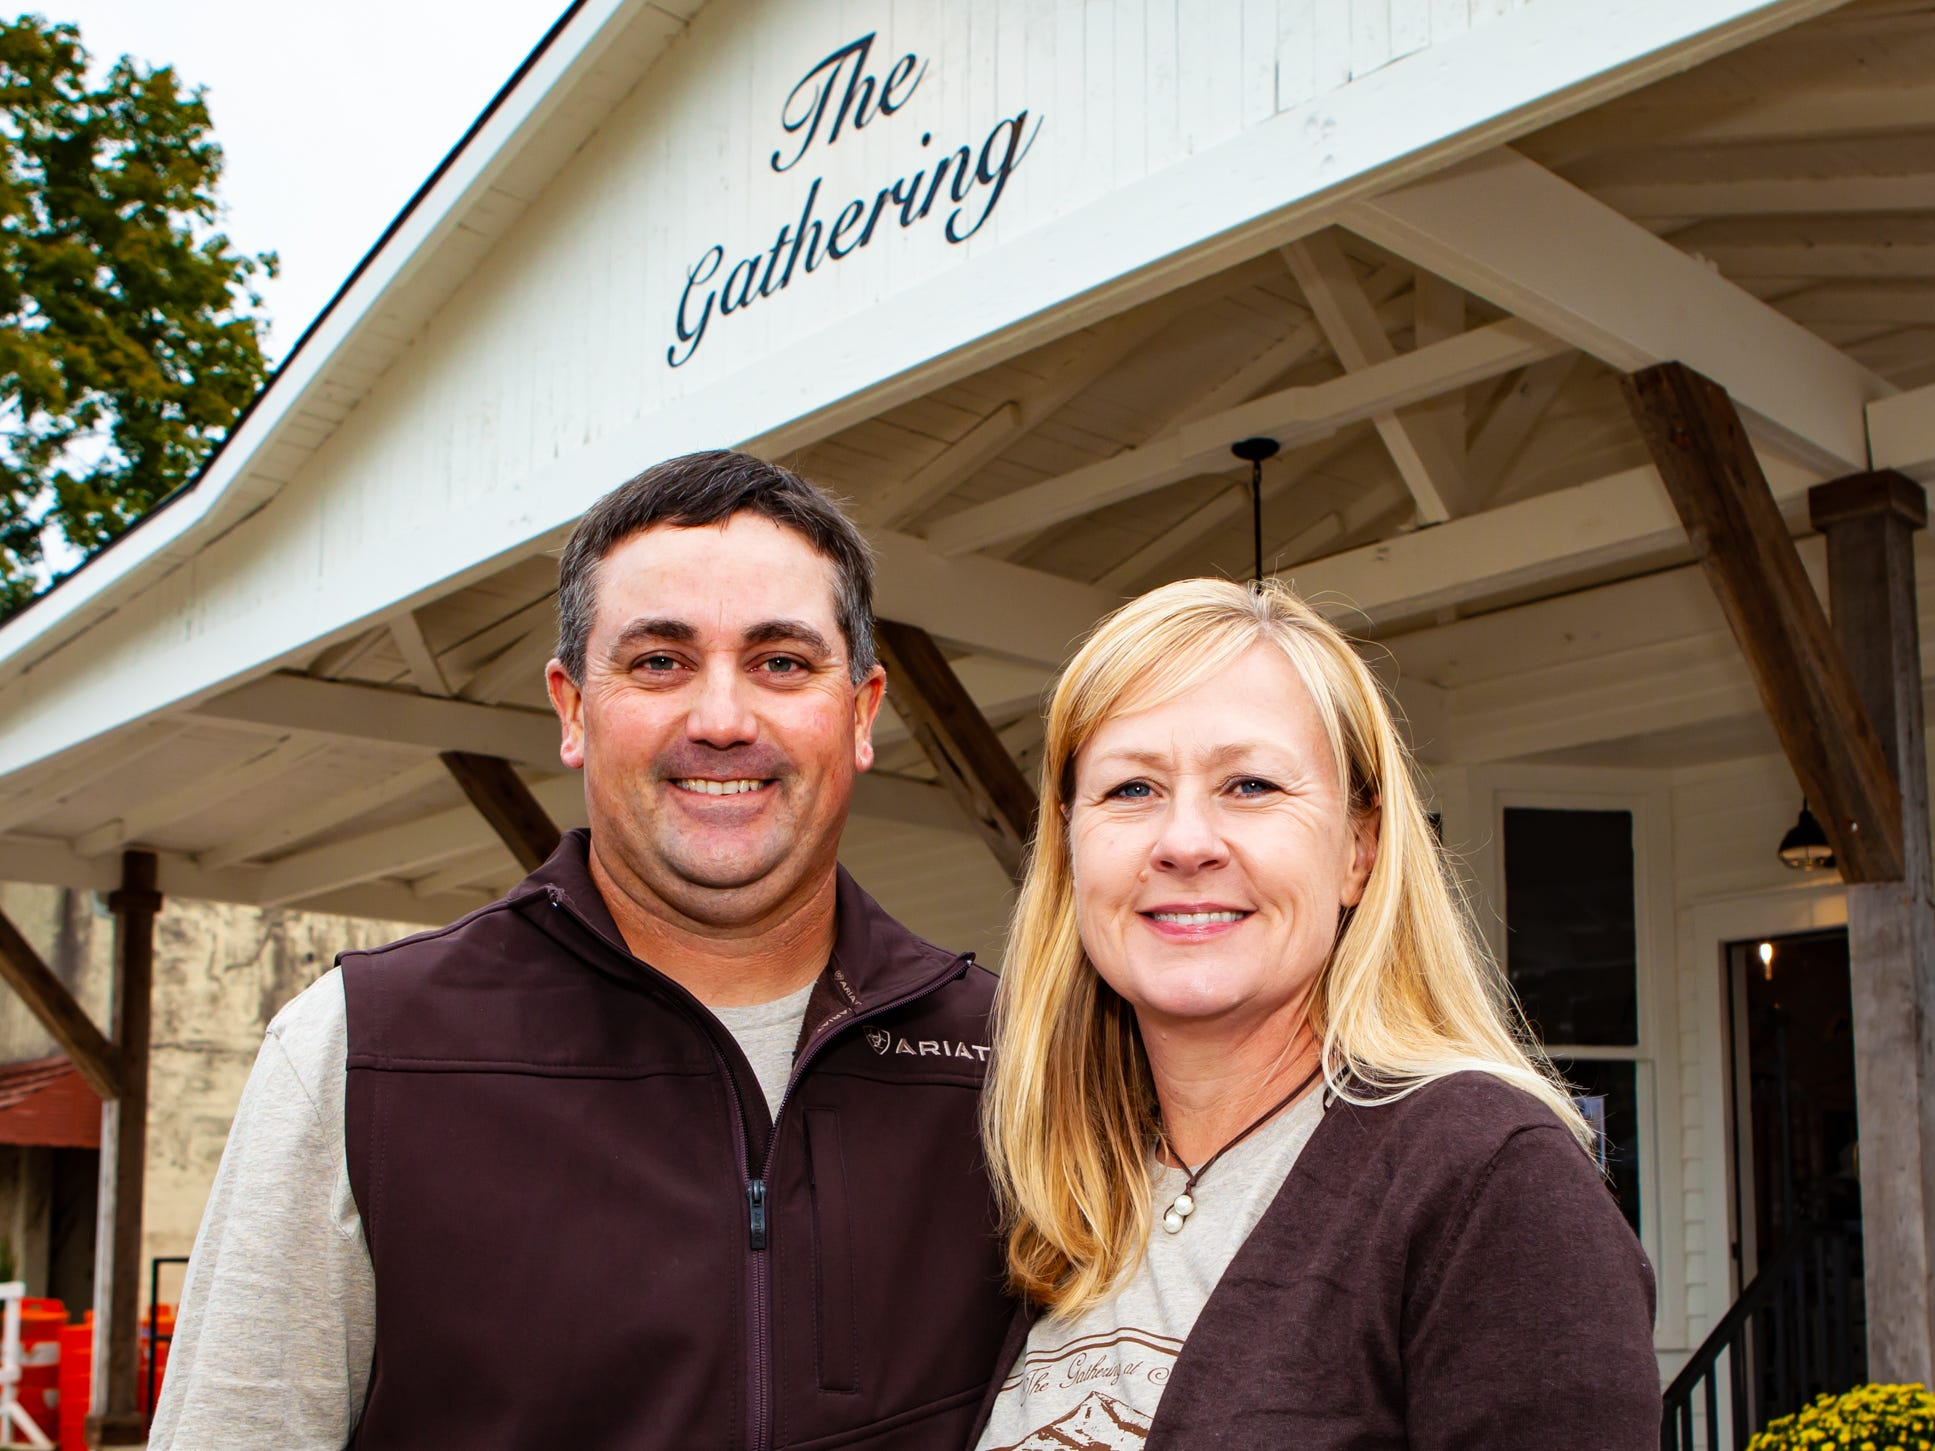 Phillip and Alanna Vaught, owners of The Gathering at Milton, which held its fall market and craft fair on Saturday, Oct. 13, 2018.